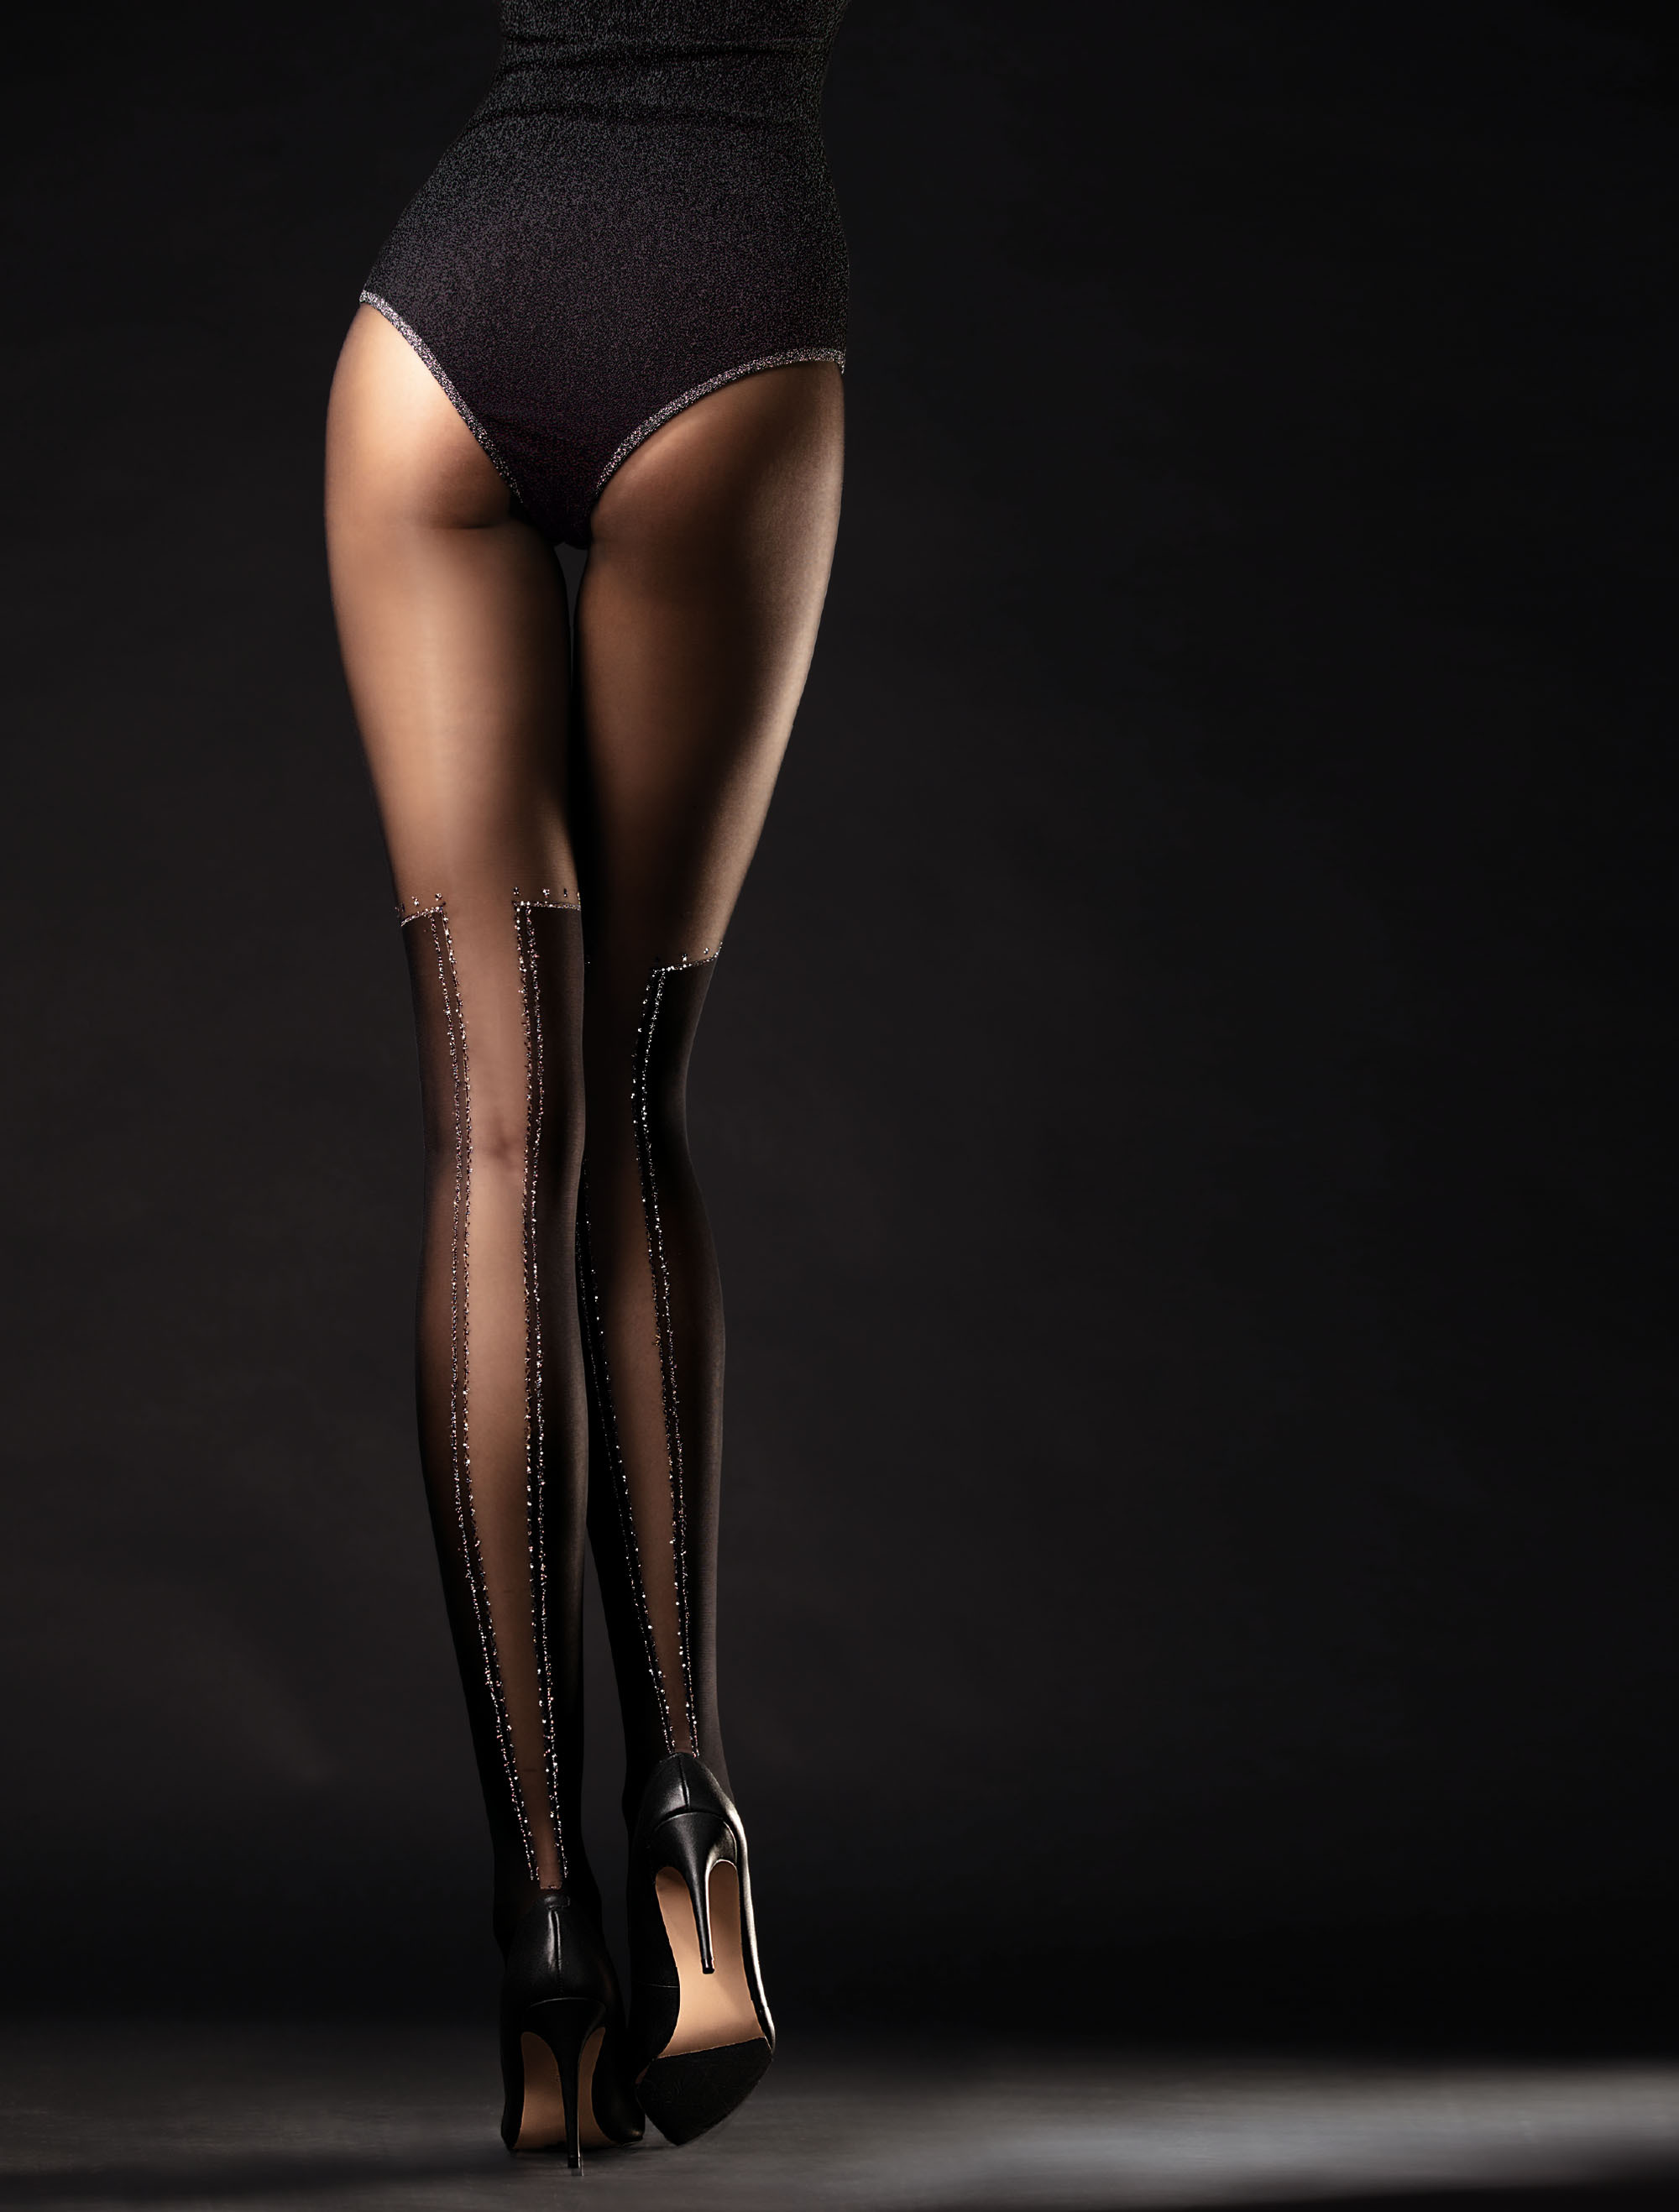 Fiore: Intoxicating Diamond Thighs Semi-Opaque Tights